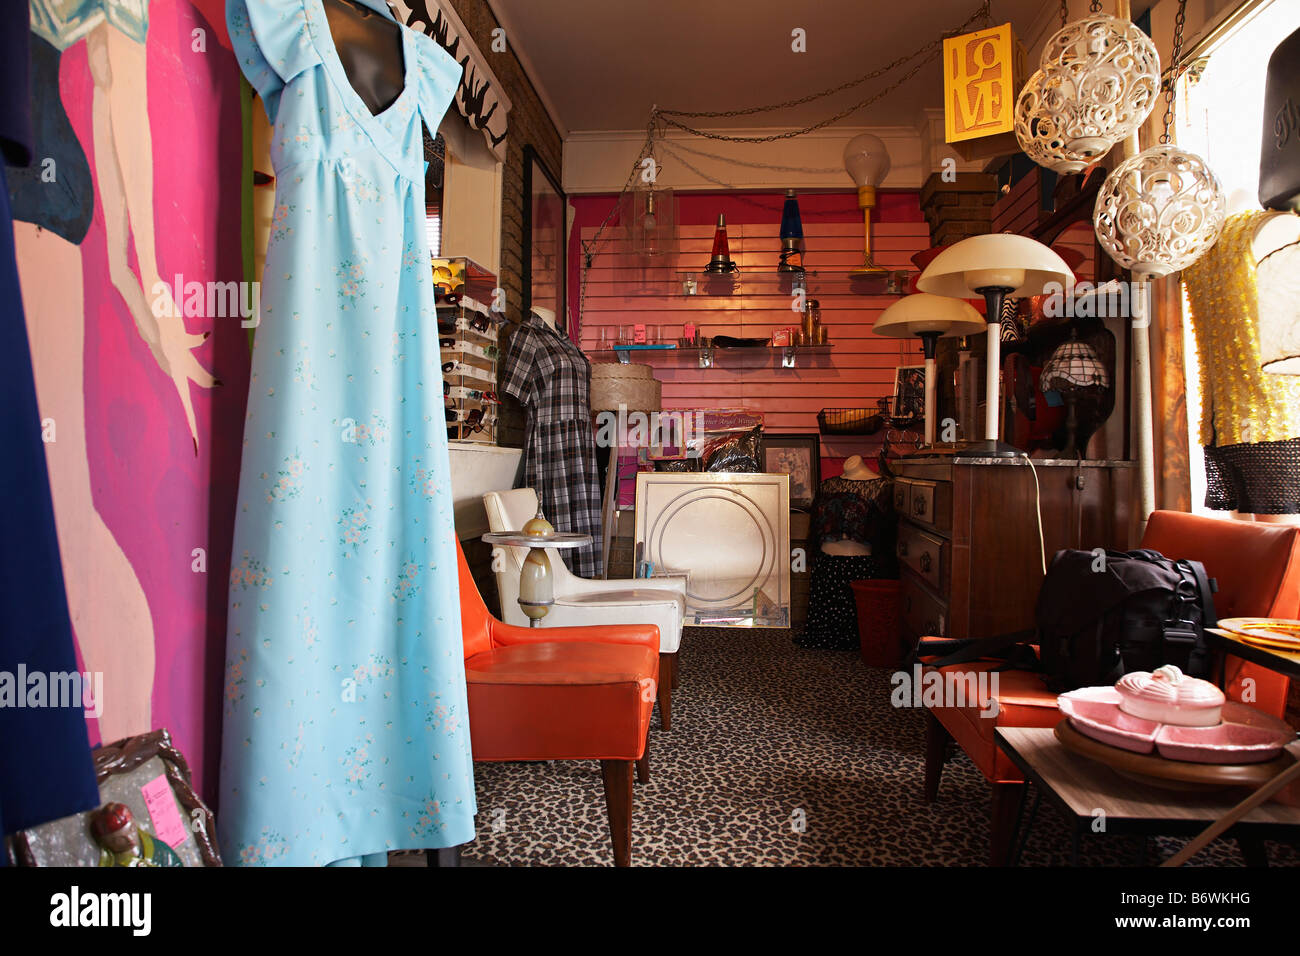 Clothing And Furniture In Crowded Second Hand Store   Stock Image